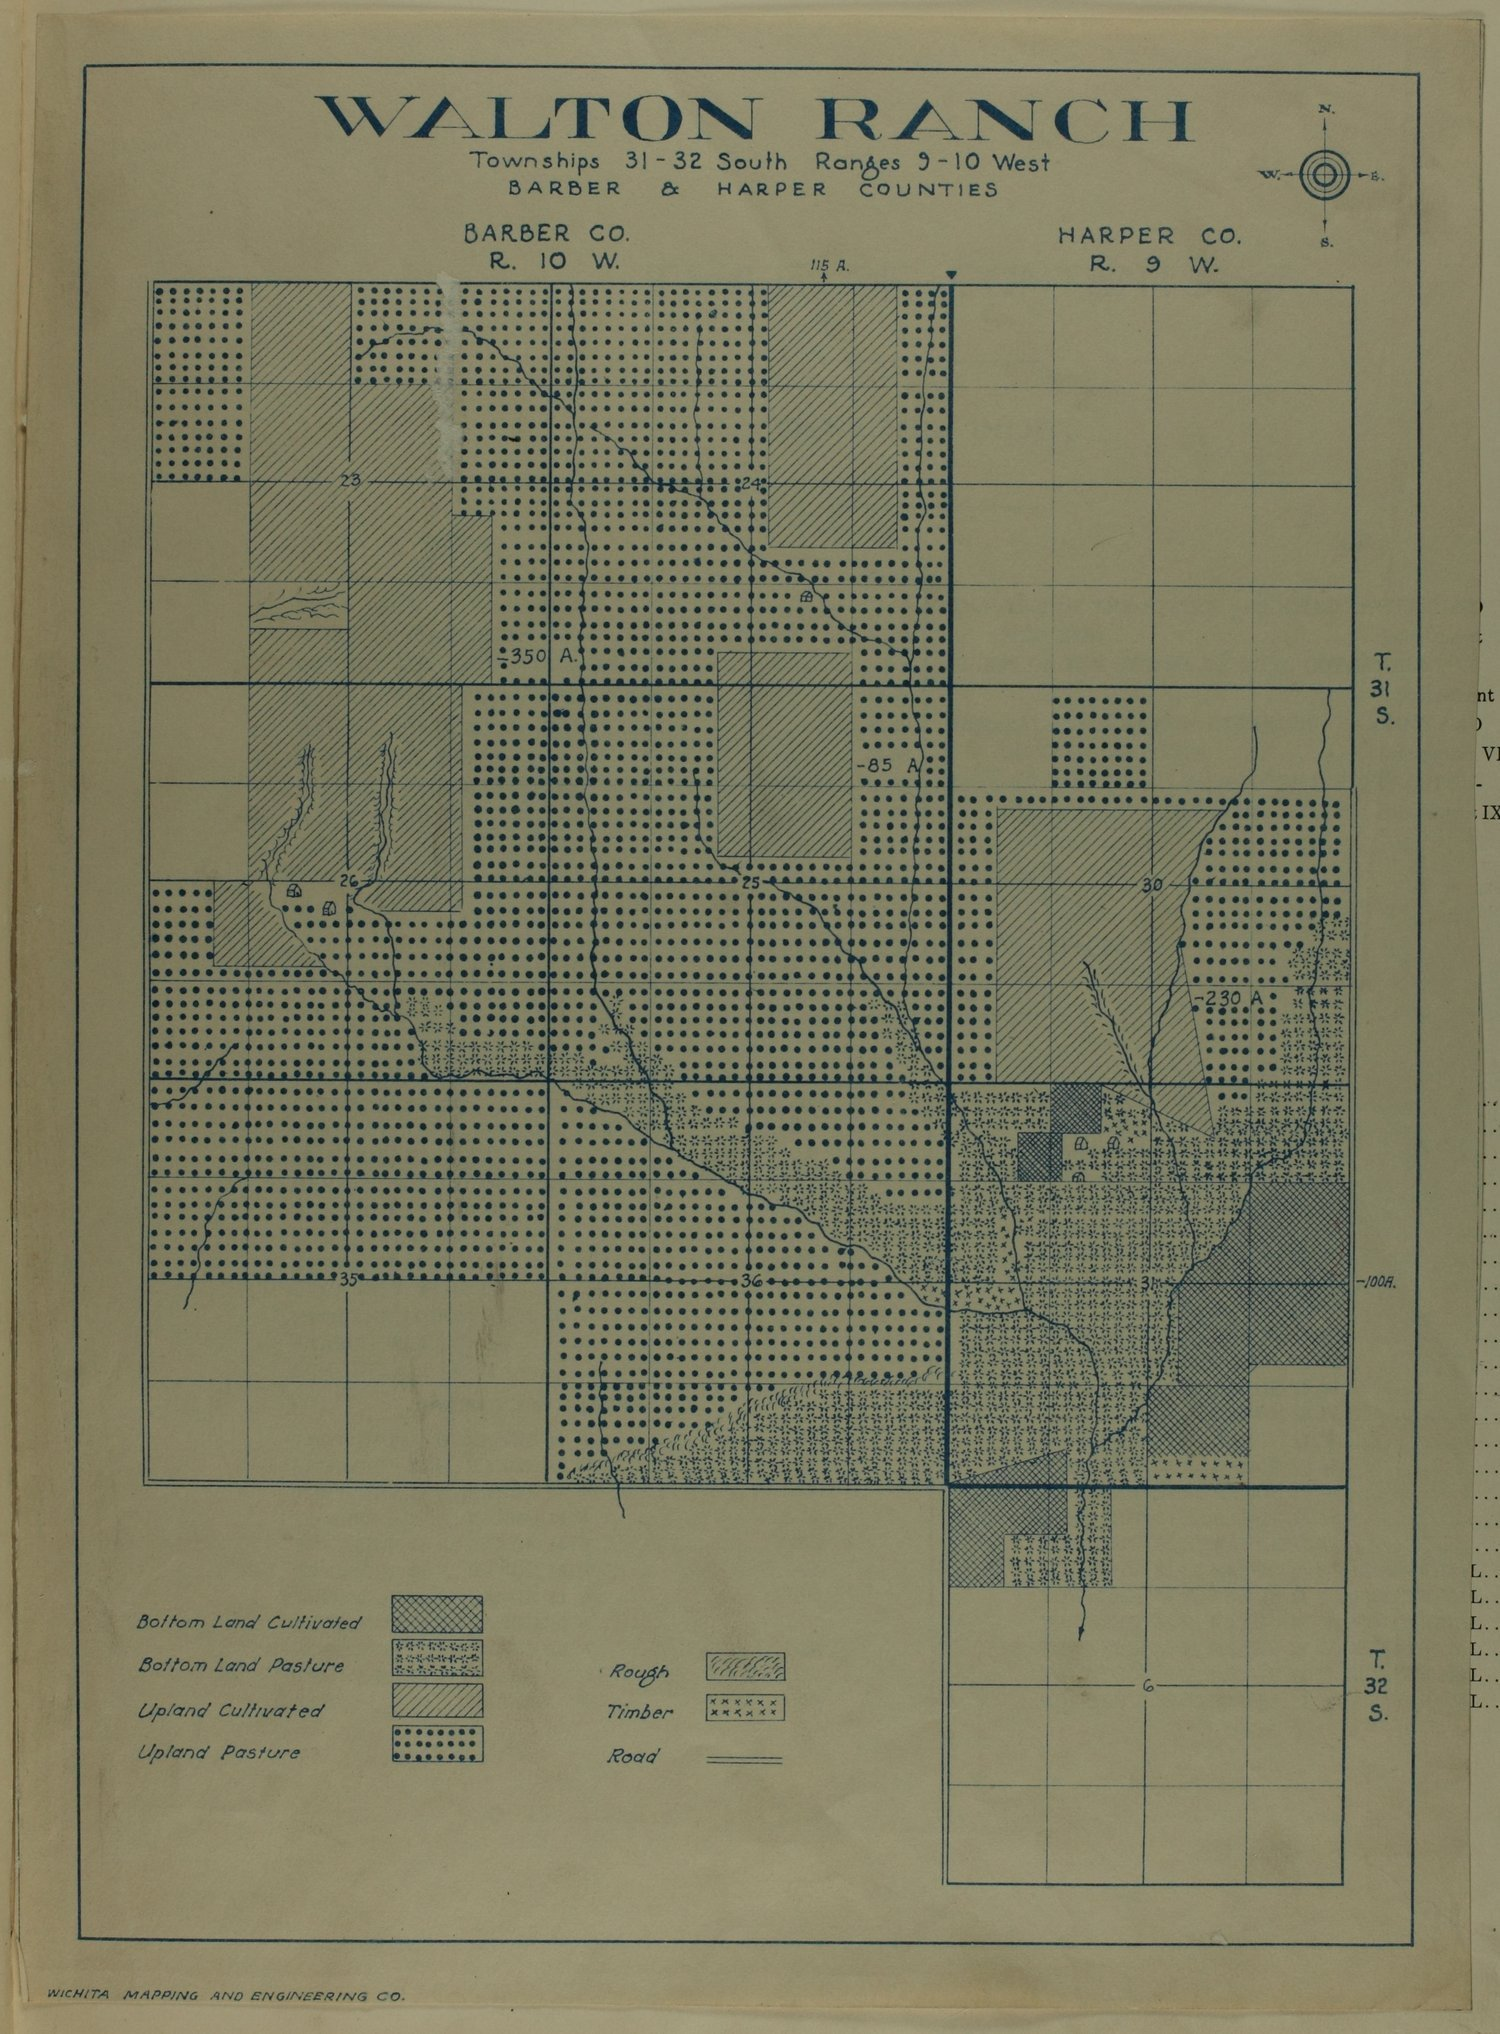 Standard atlas of Barber County, Kansas - map insert